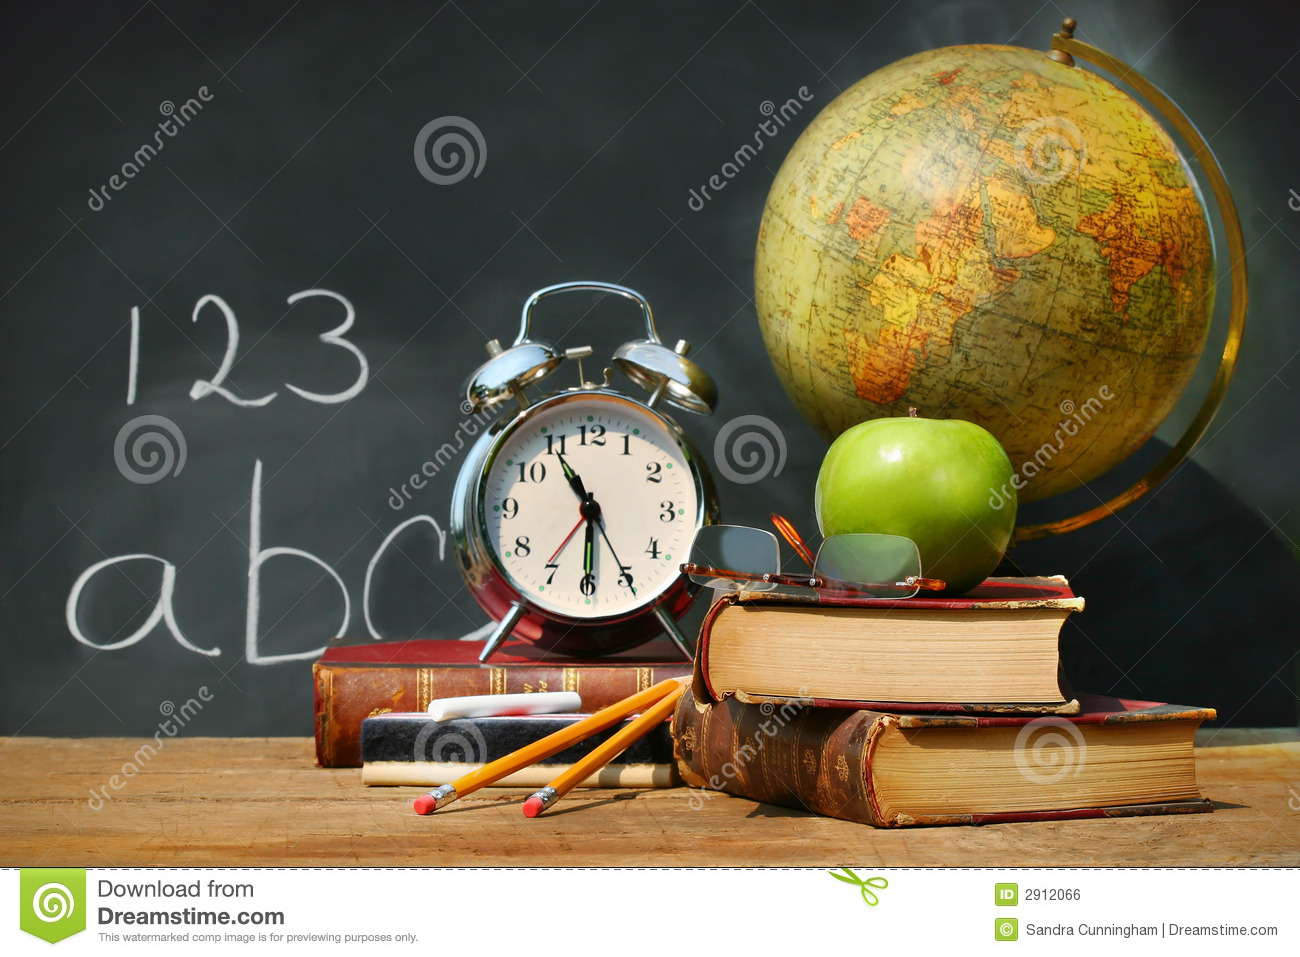 Old School Books Royalty Free Stock Image - Image: 2912066